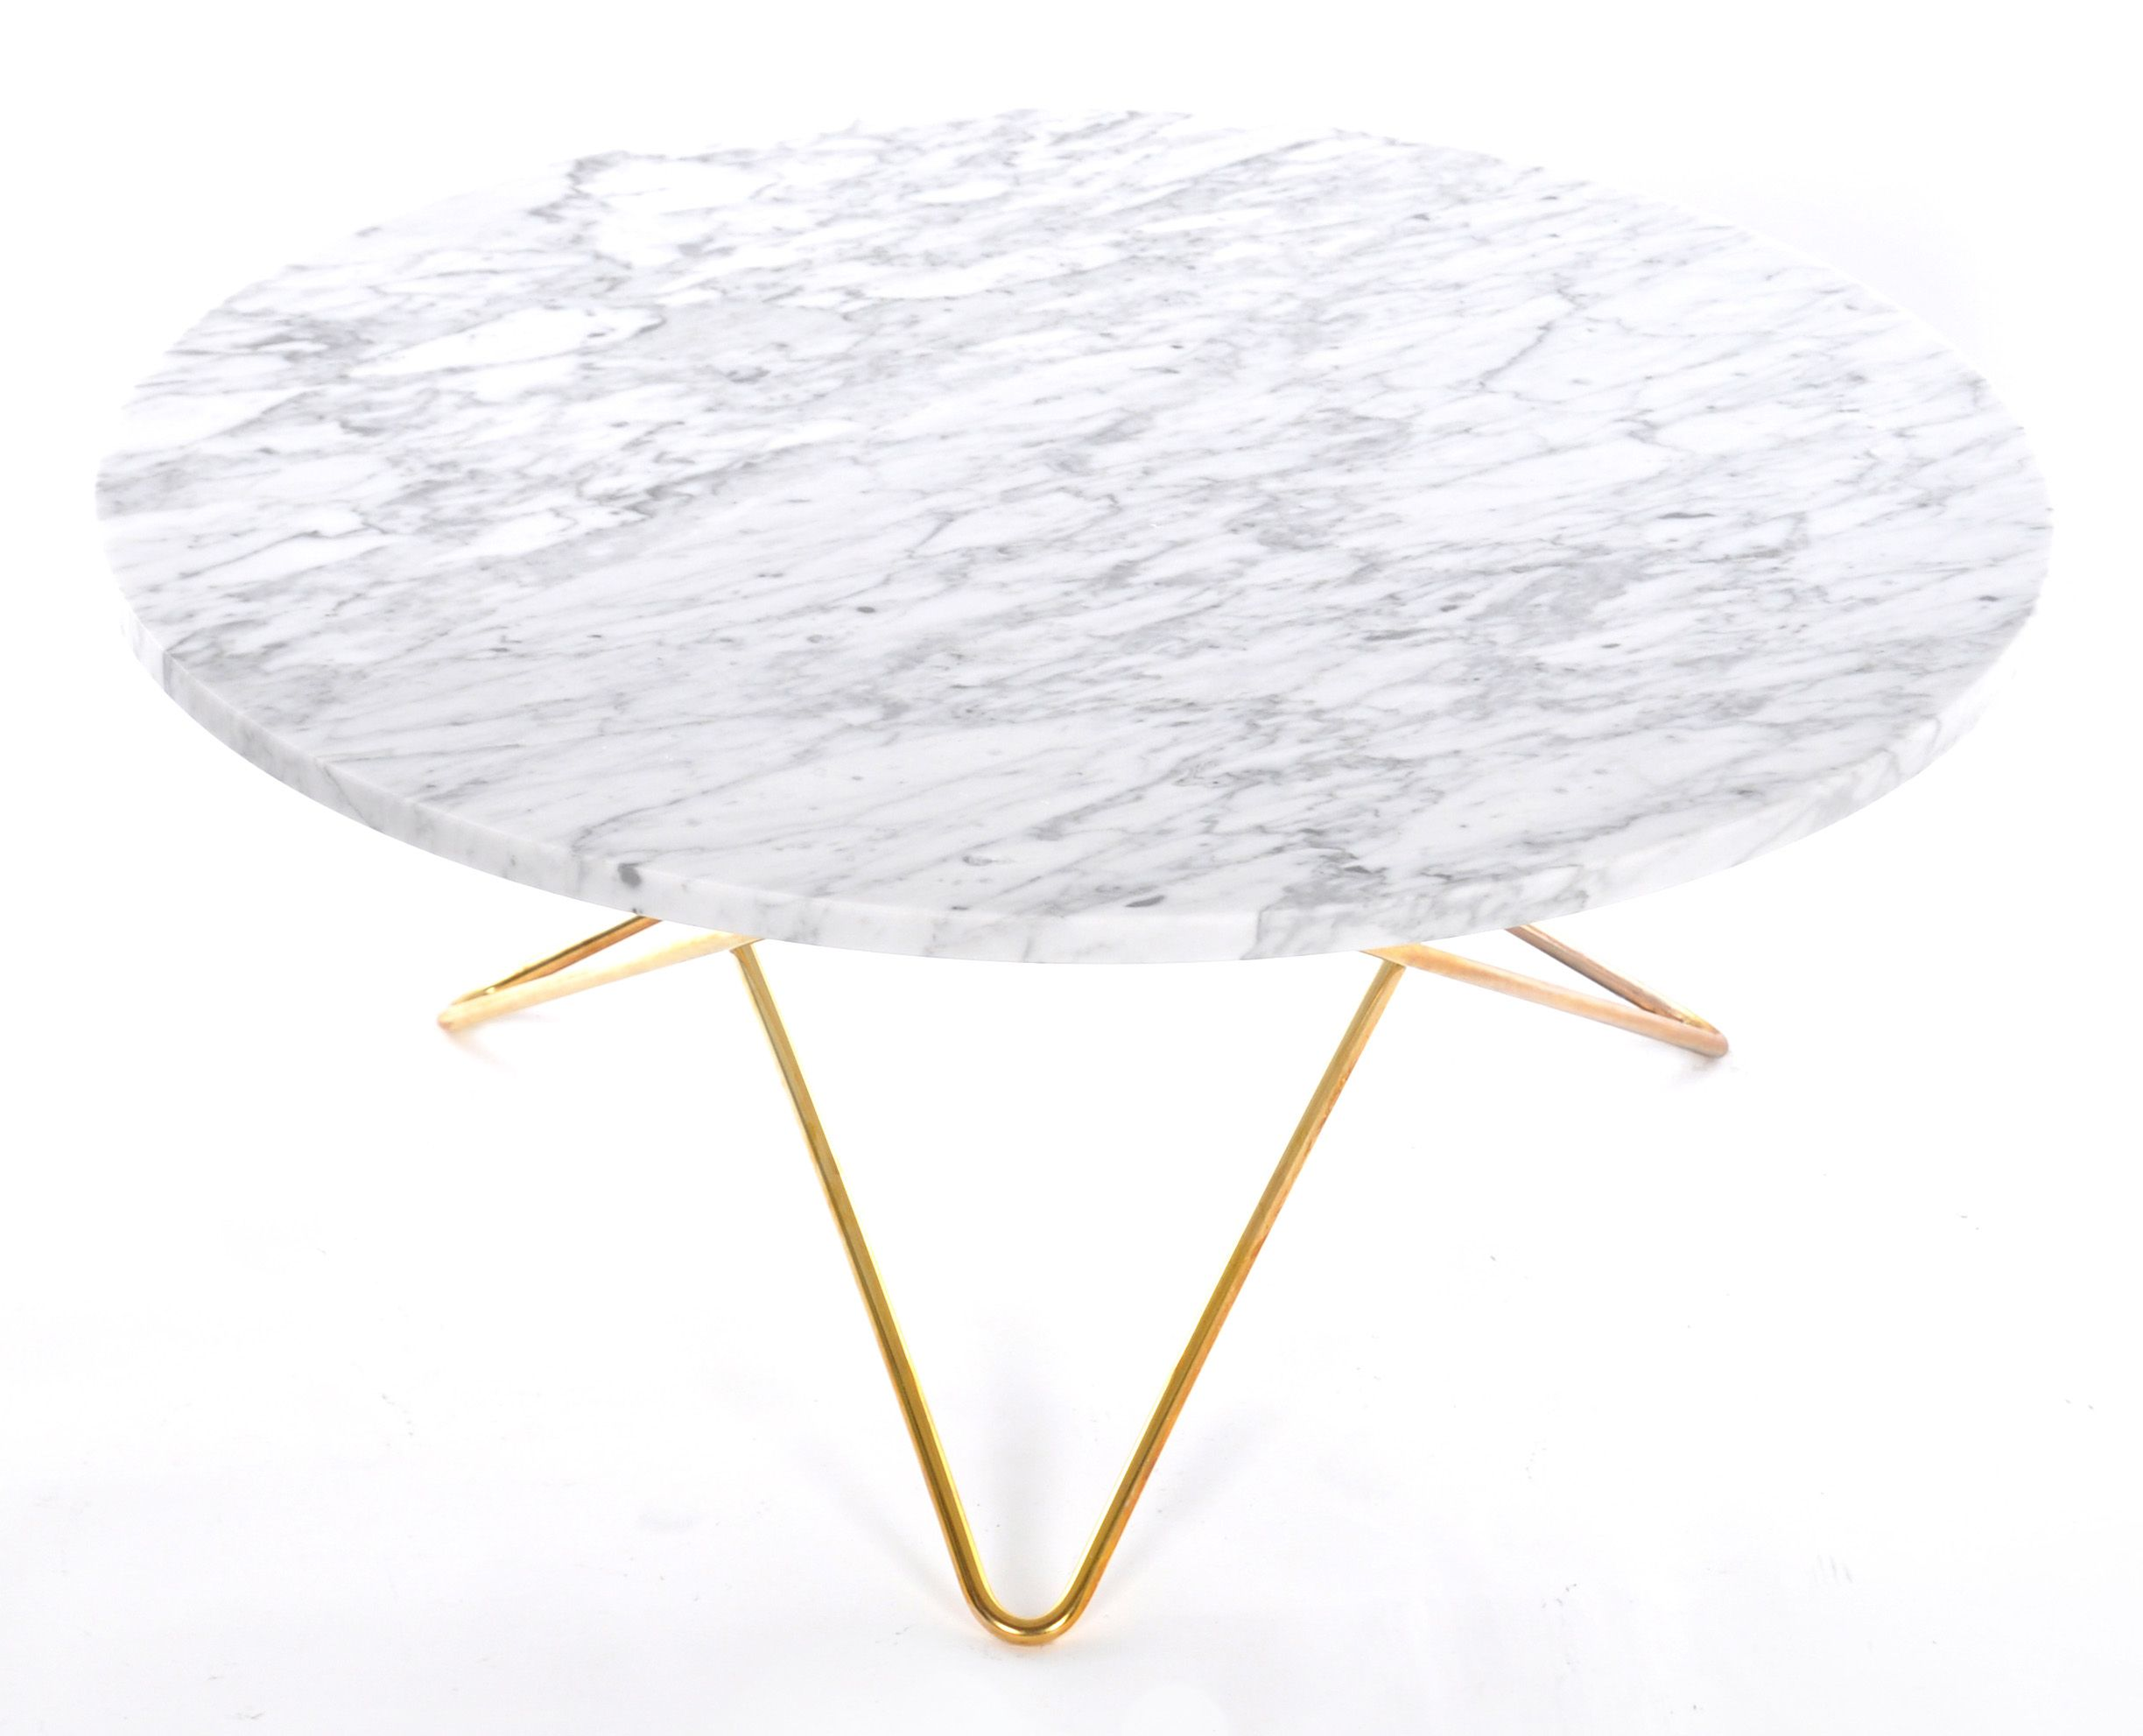 O table soffbord carrara marmor från OX Design hos ConfidentLiving se Inredning Table